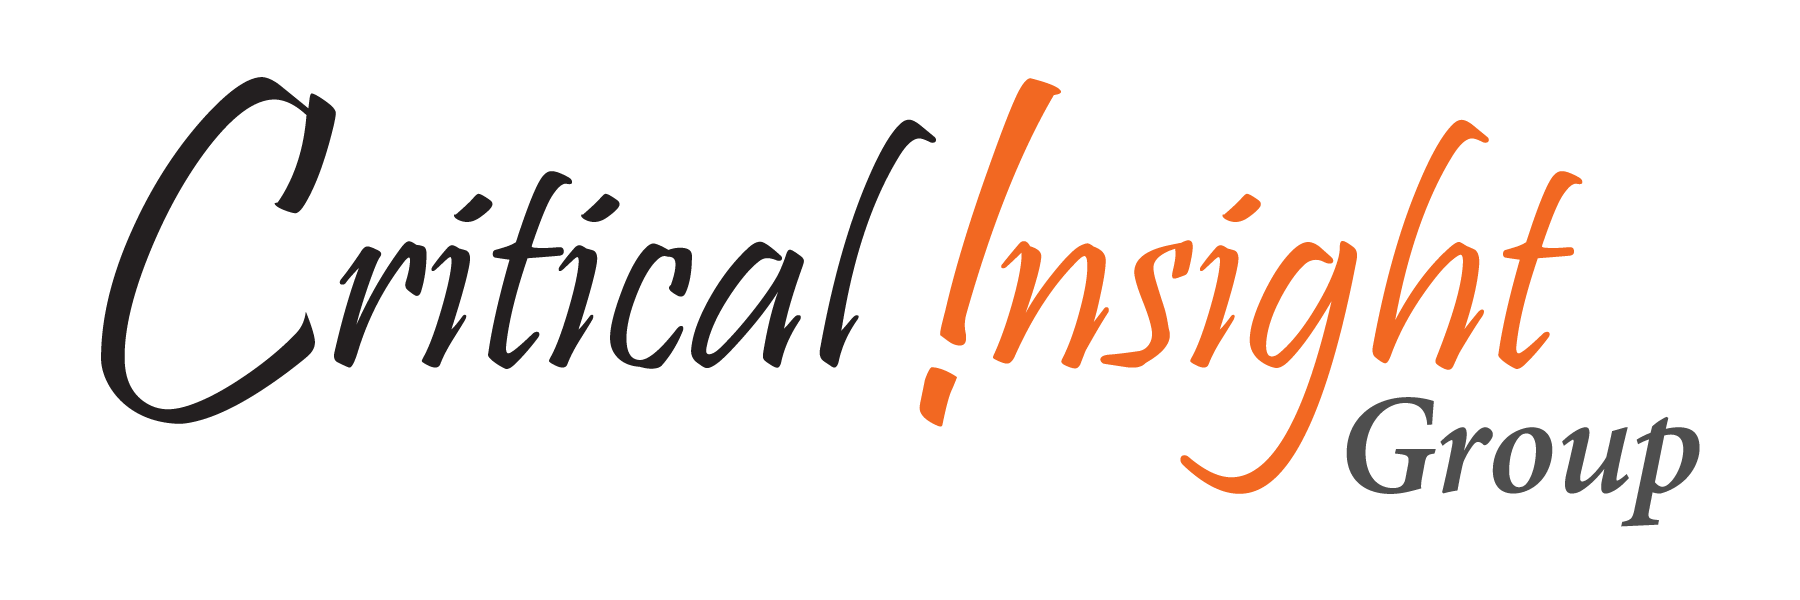 Critical Insight Group